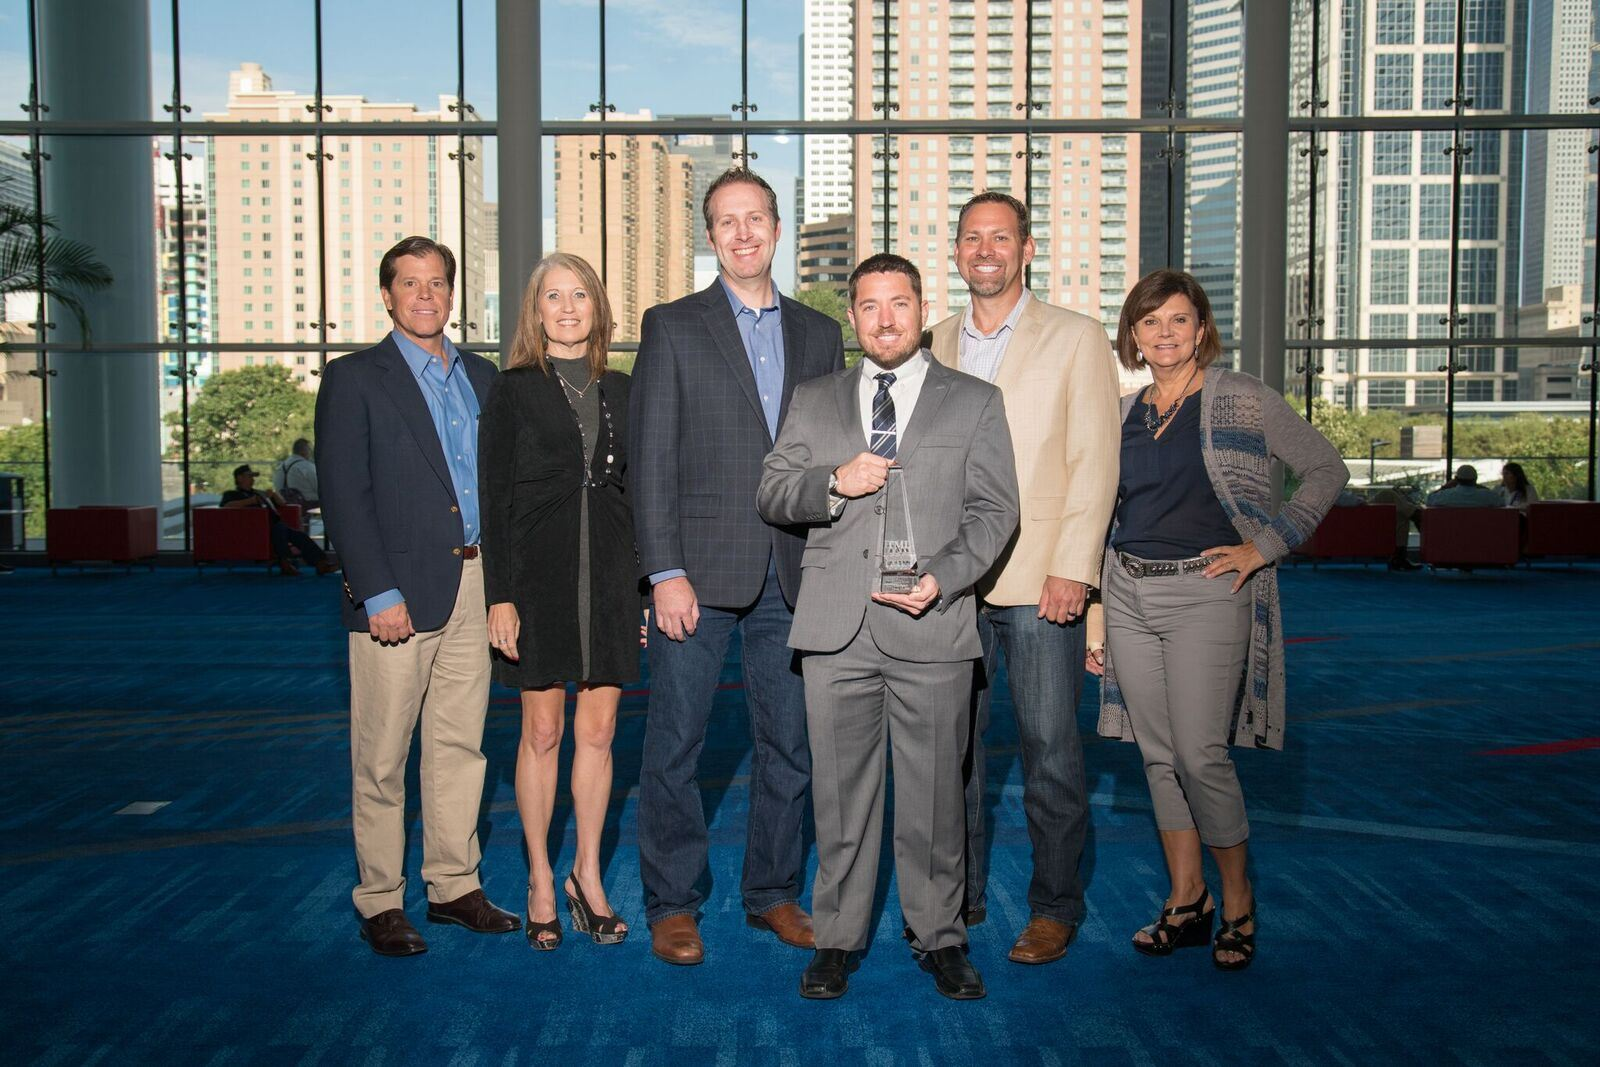 6 Round Rock employees together with one holding award at event